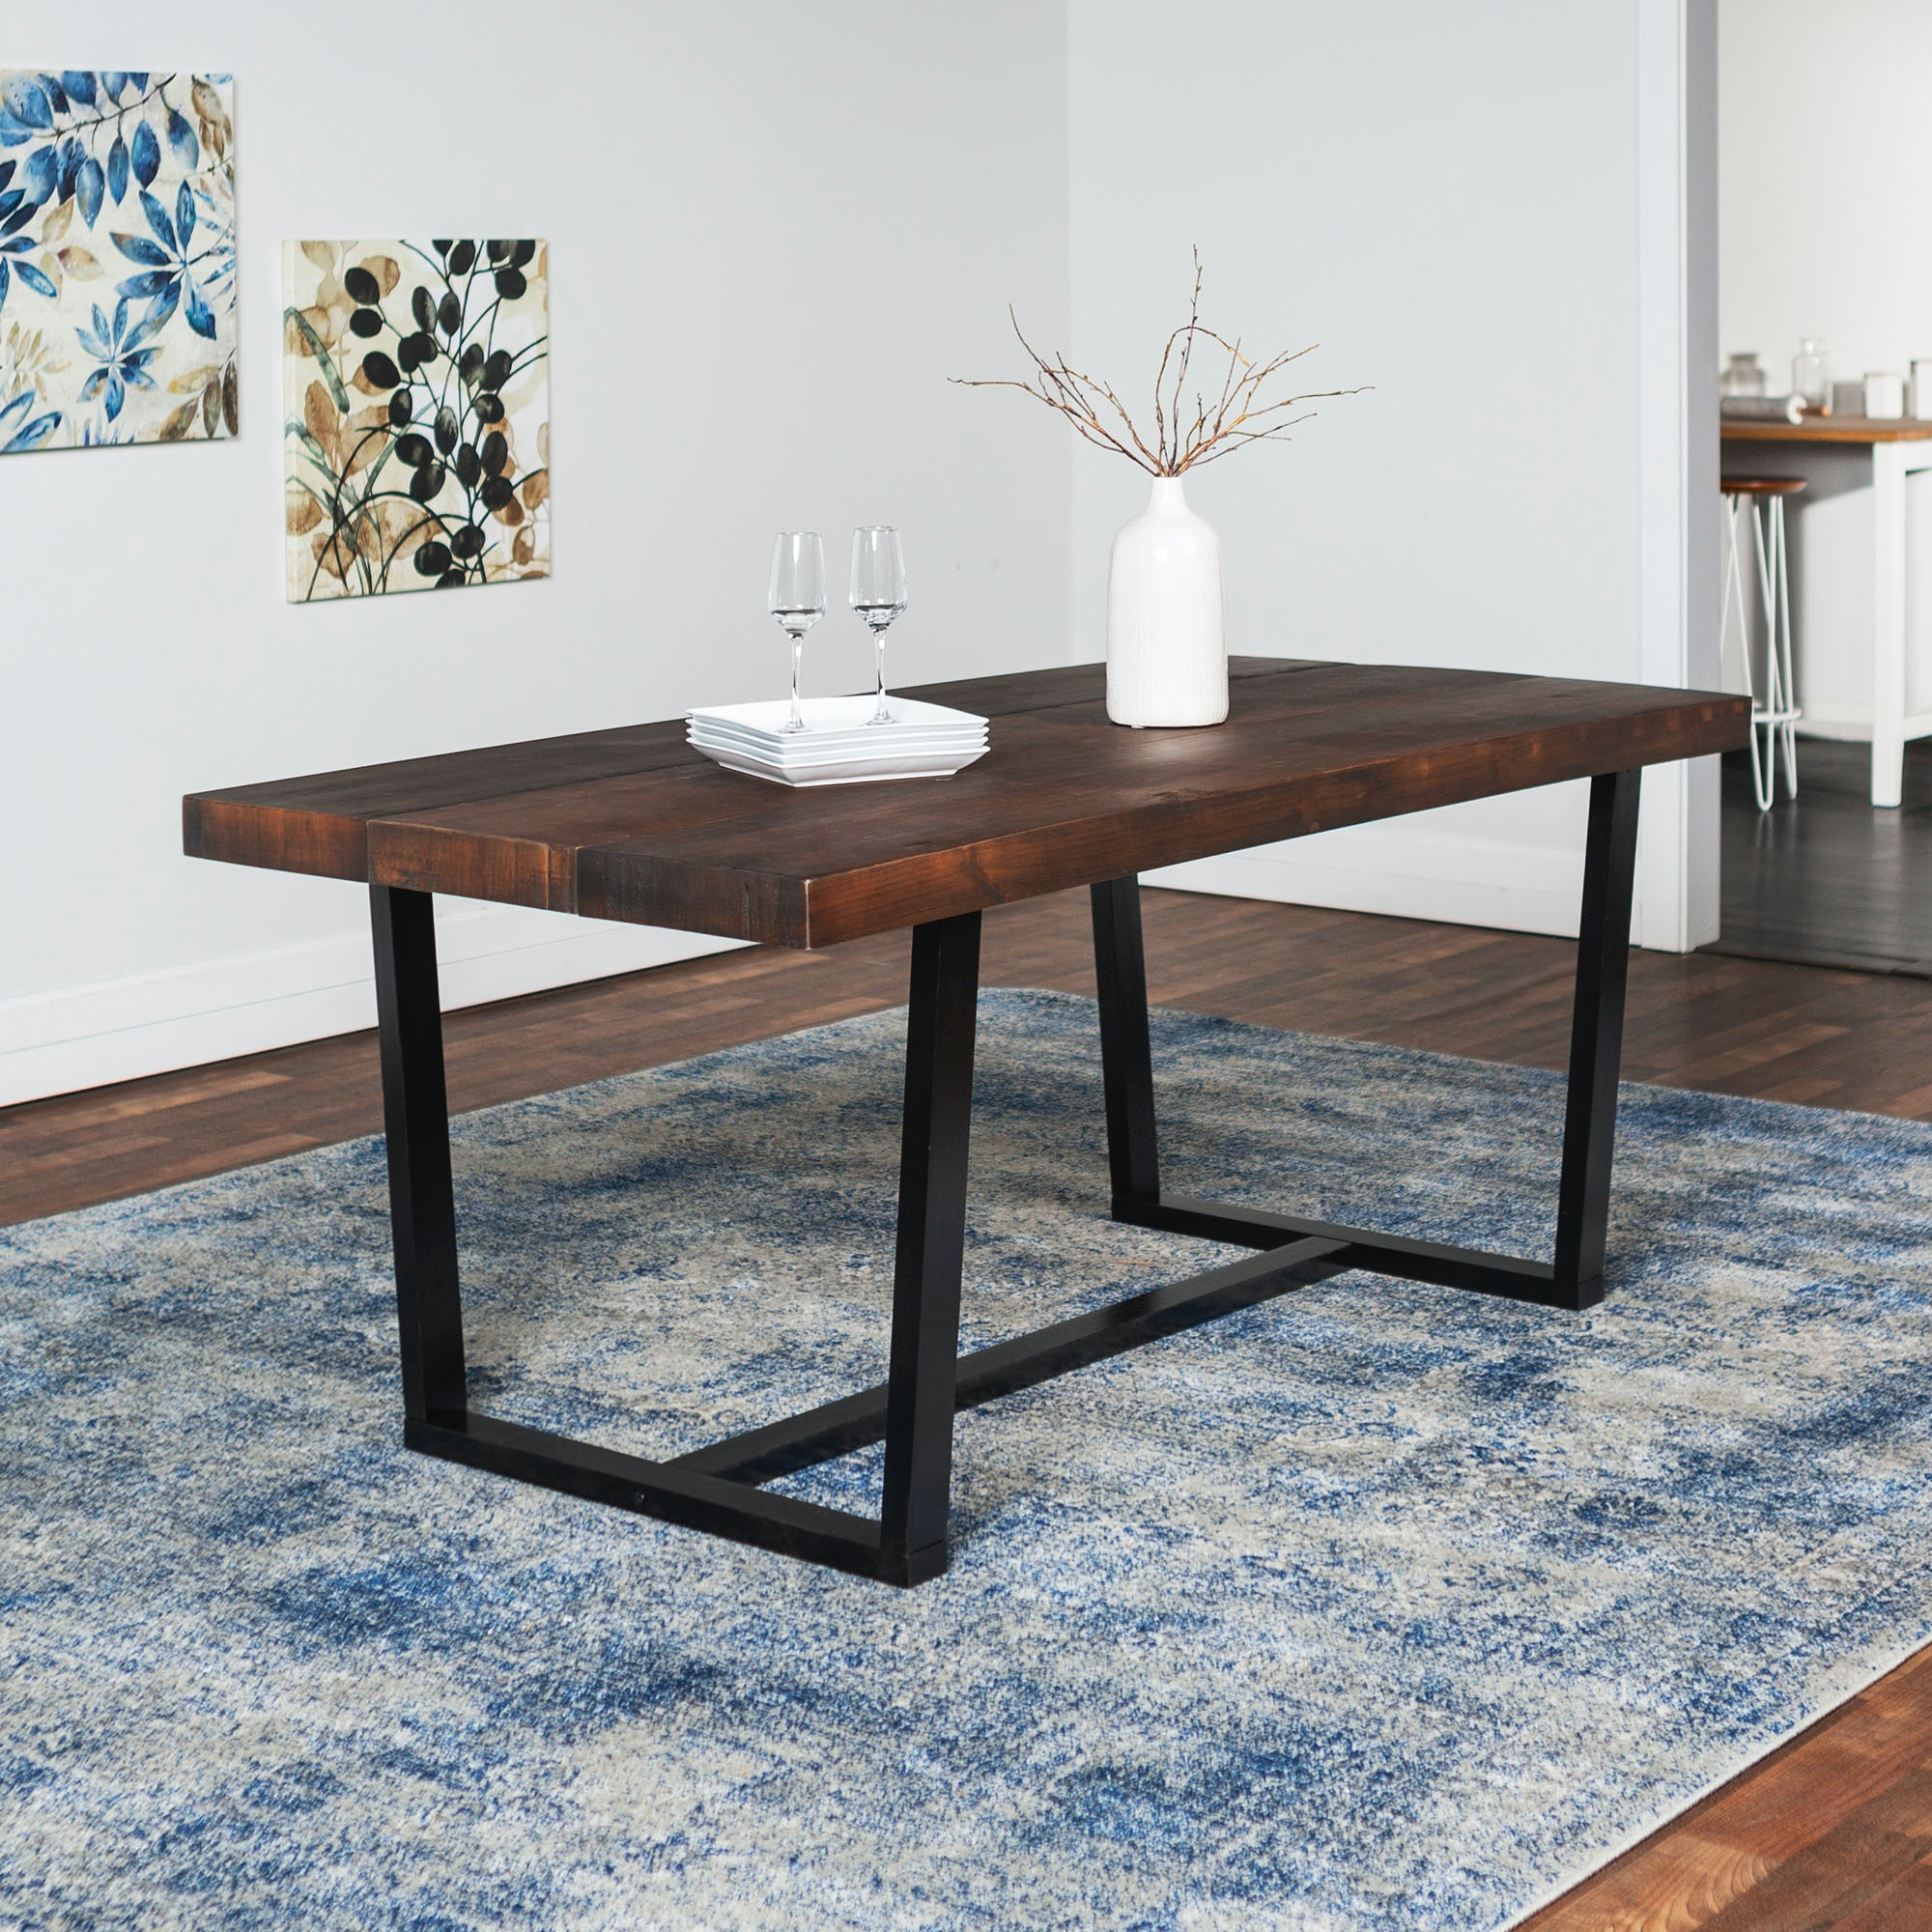 Ft Myers 72u0027u0027 Rustic Urban Industrial Farmhouse Distressed Solid Wood Dining Table WEDTW72DSWMA from & 72u0027u0027 Rustic Urban Industrial Farmhouse Distressed Solid Wood Dining ...